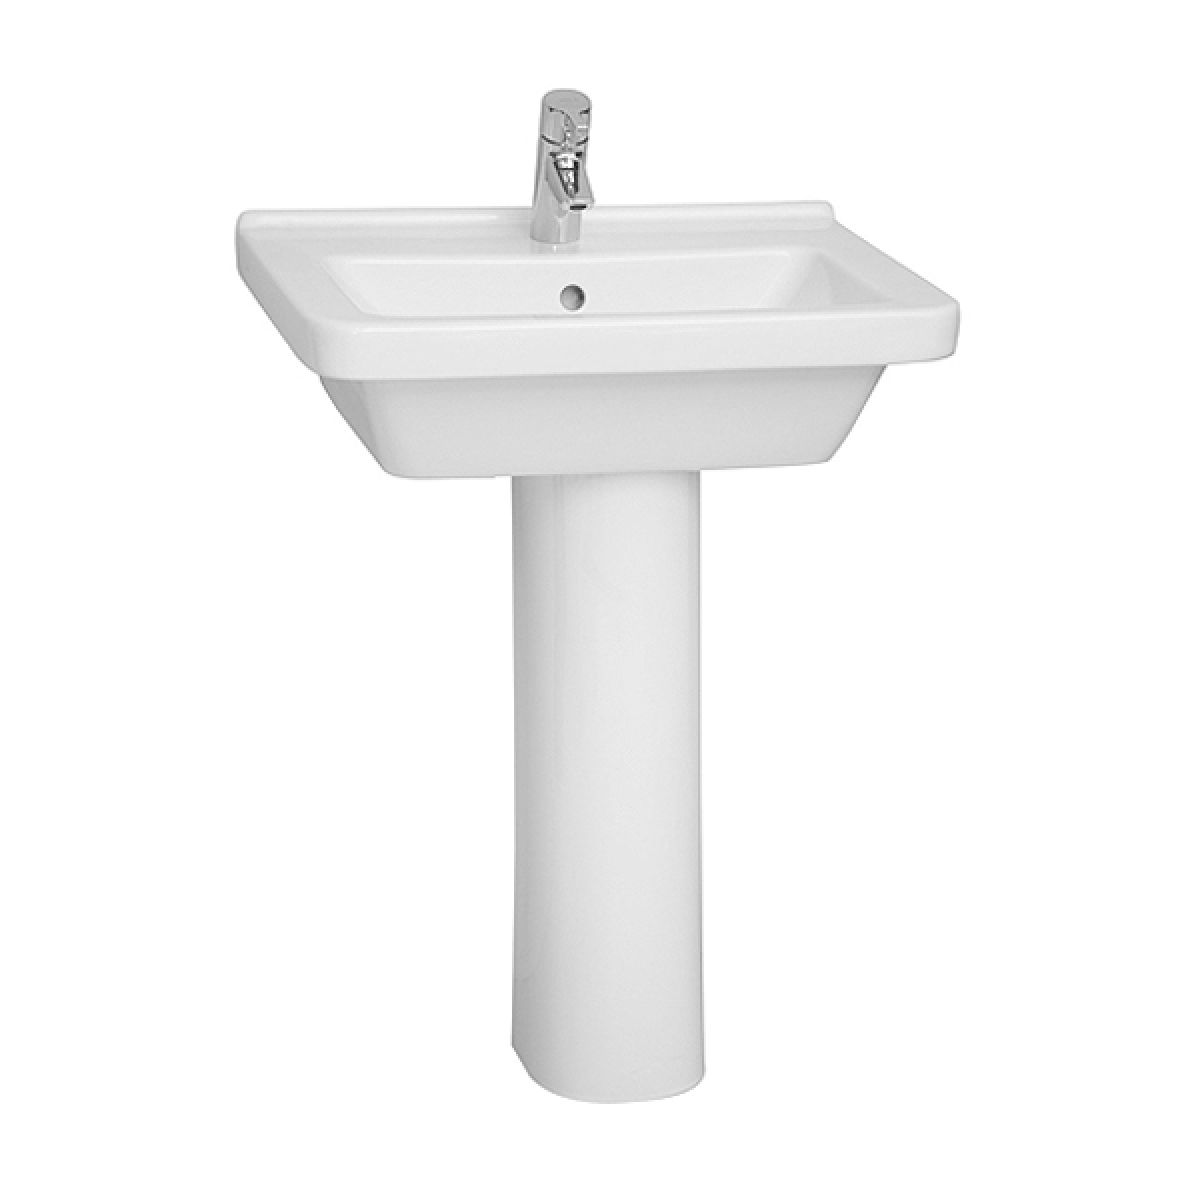 Vitra S50 1 Tap Hole Square Basin with Full Pedestal 600mm